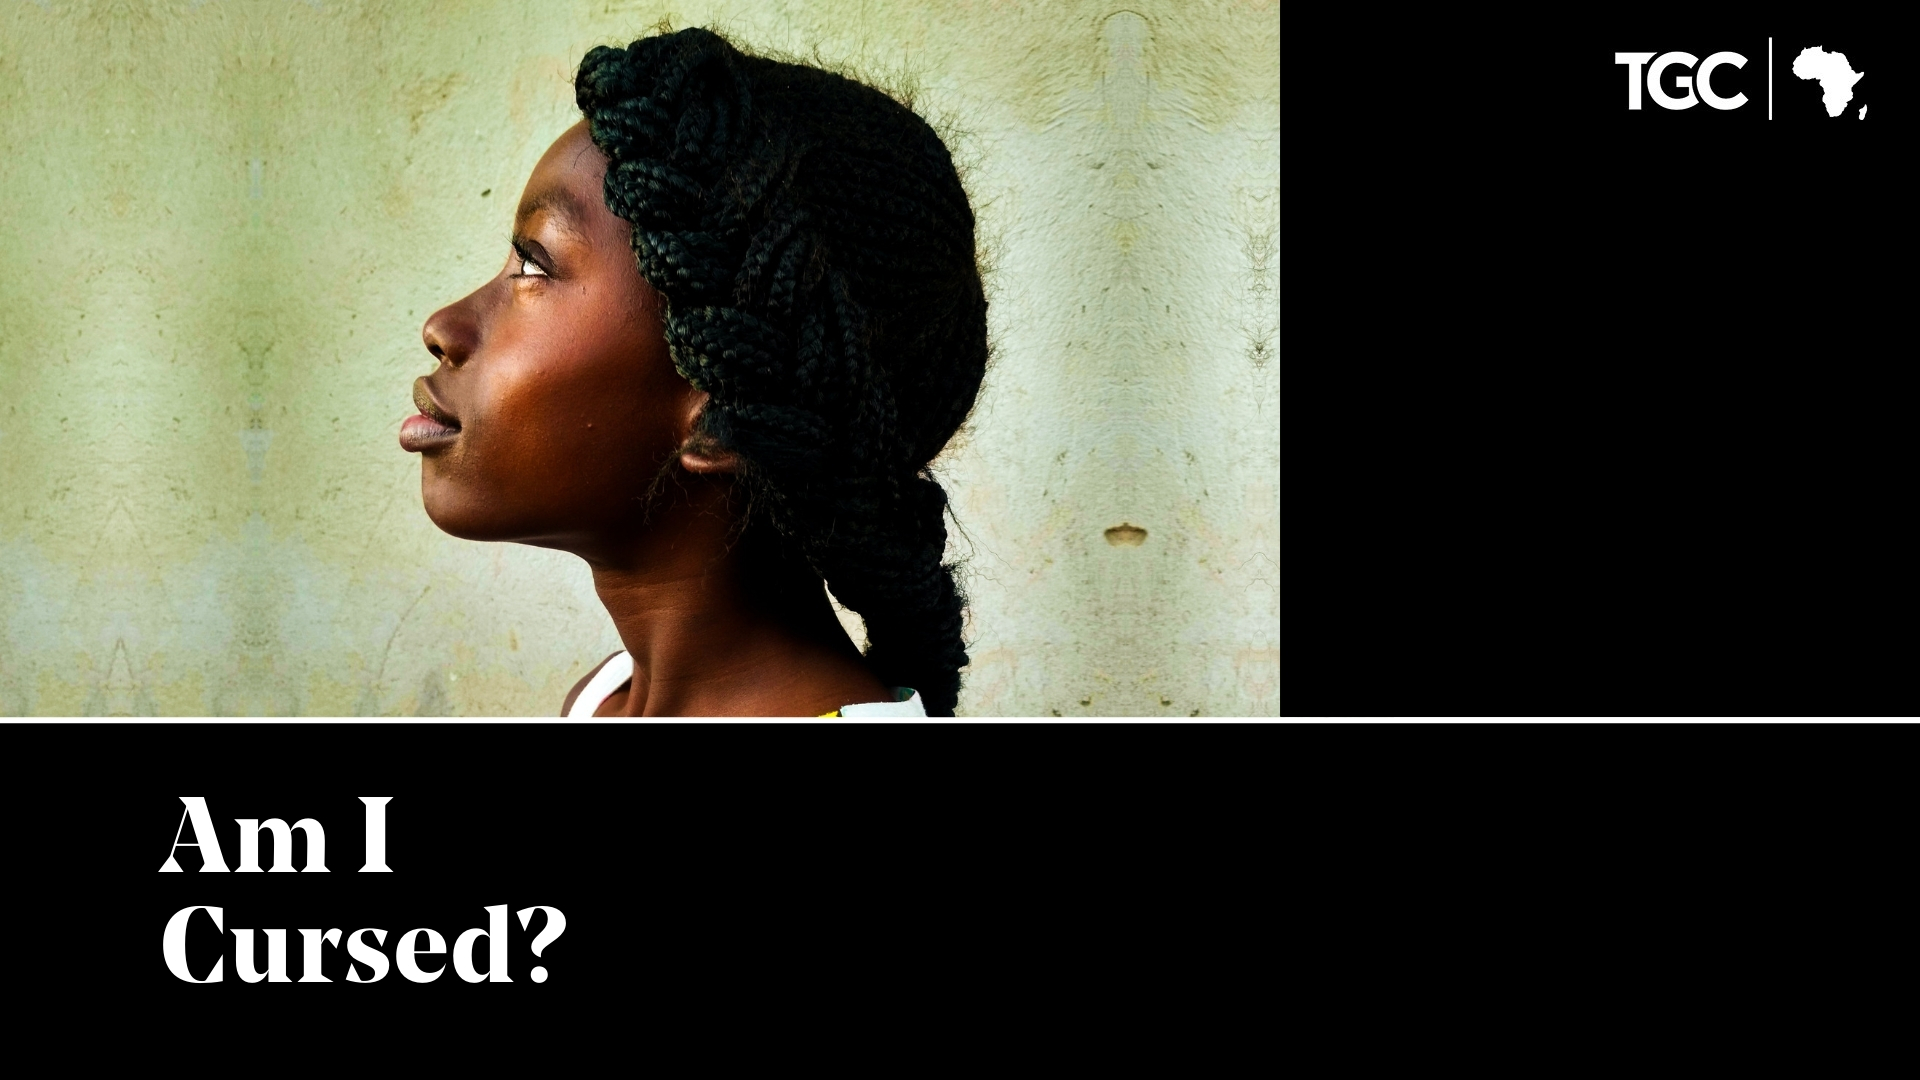 Am I Cursed - Zambian woman looking up with plain wall background